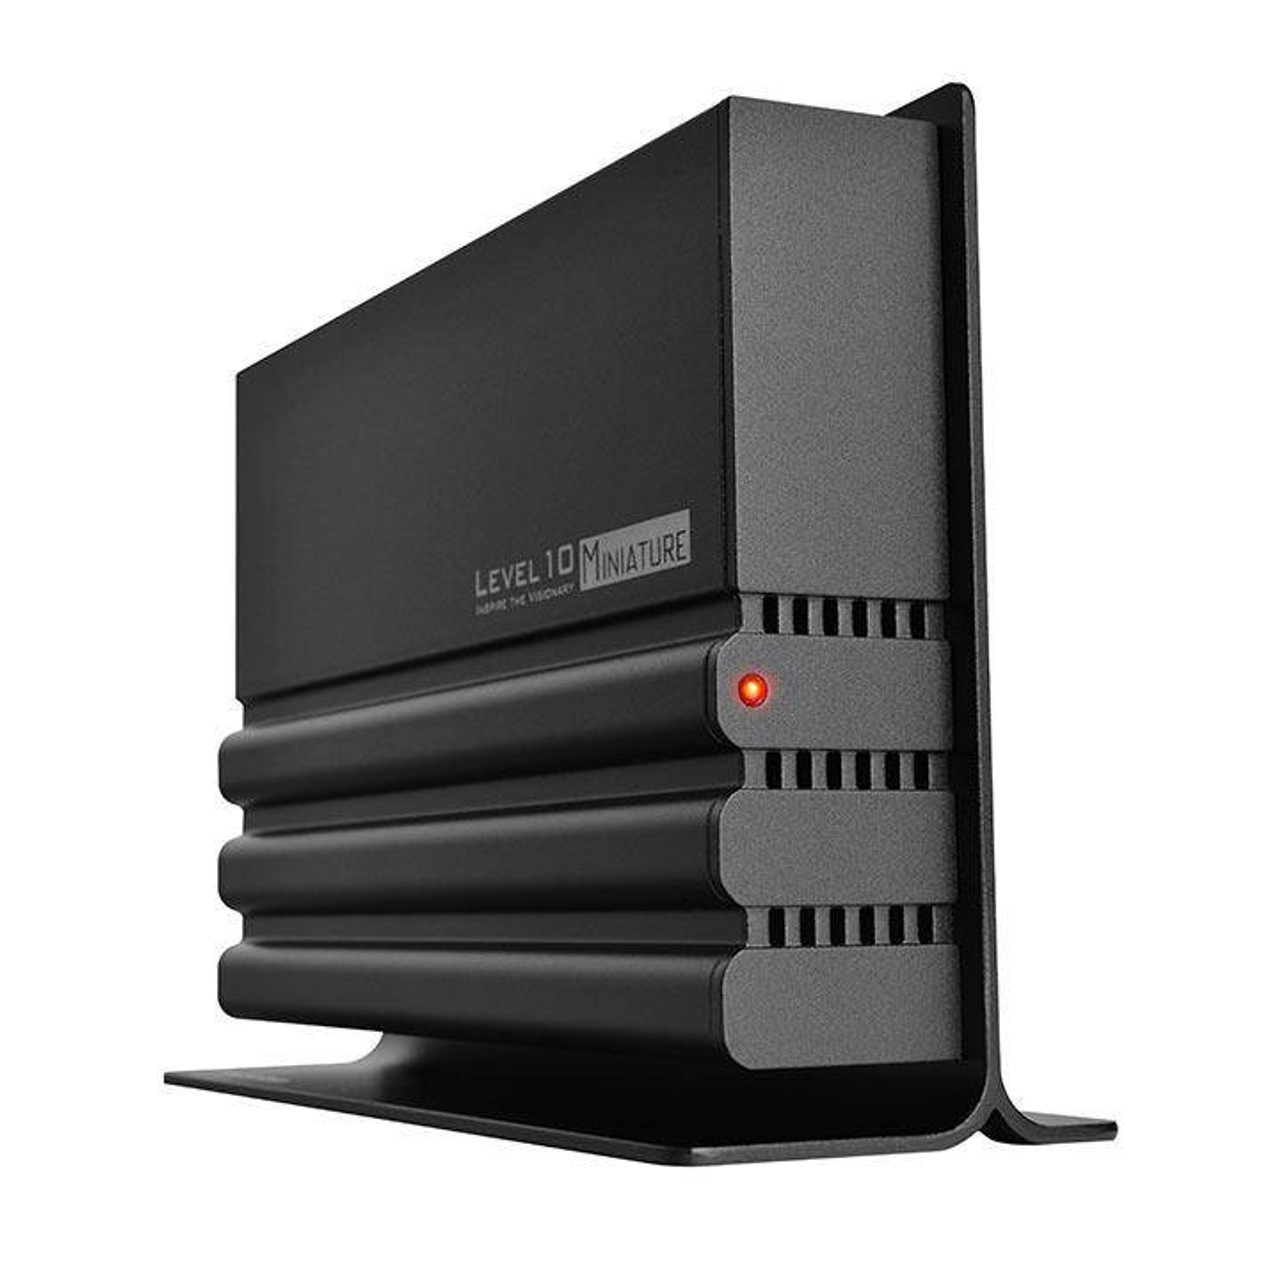 Image for Thermaltake Level 10 Miniature External 2.5in/3.5in Drive USB 3.0 Enclosure CX Computer Superstore